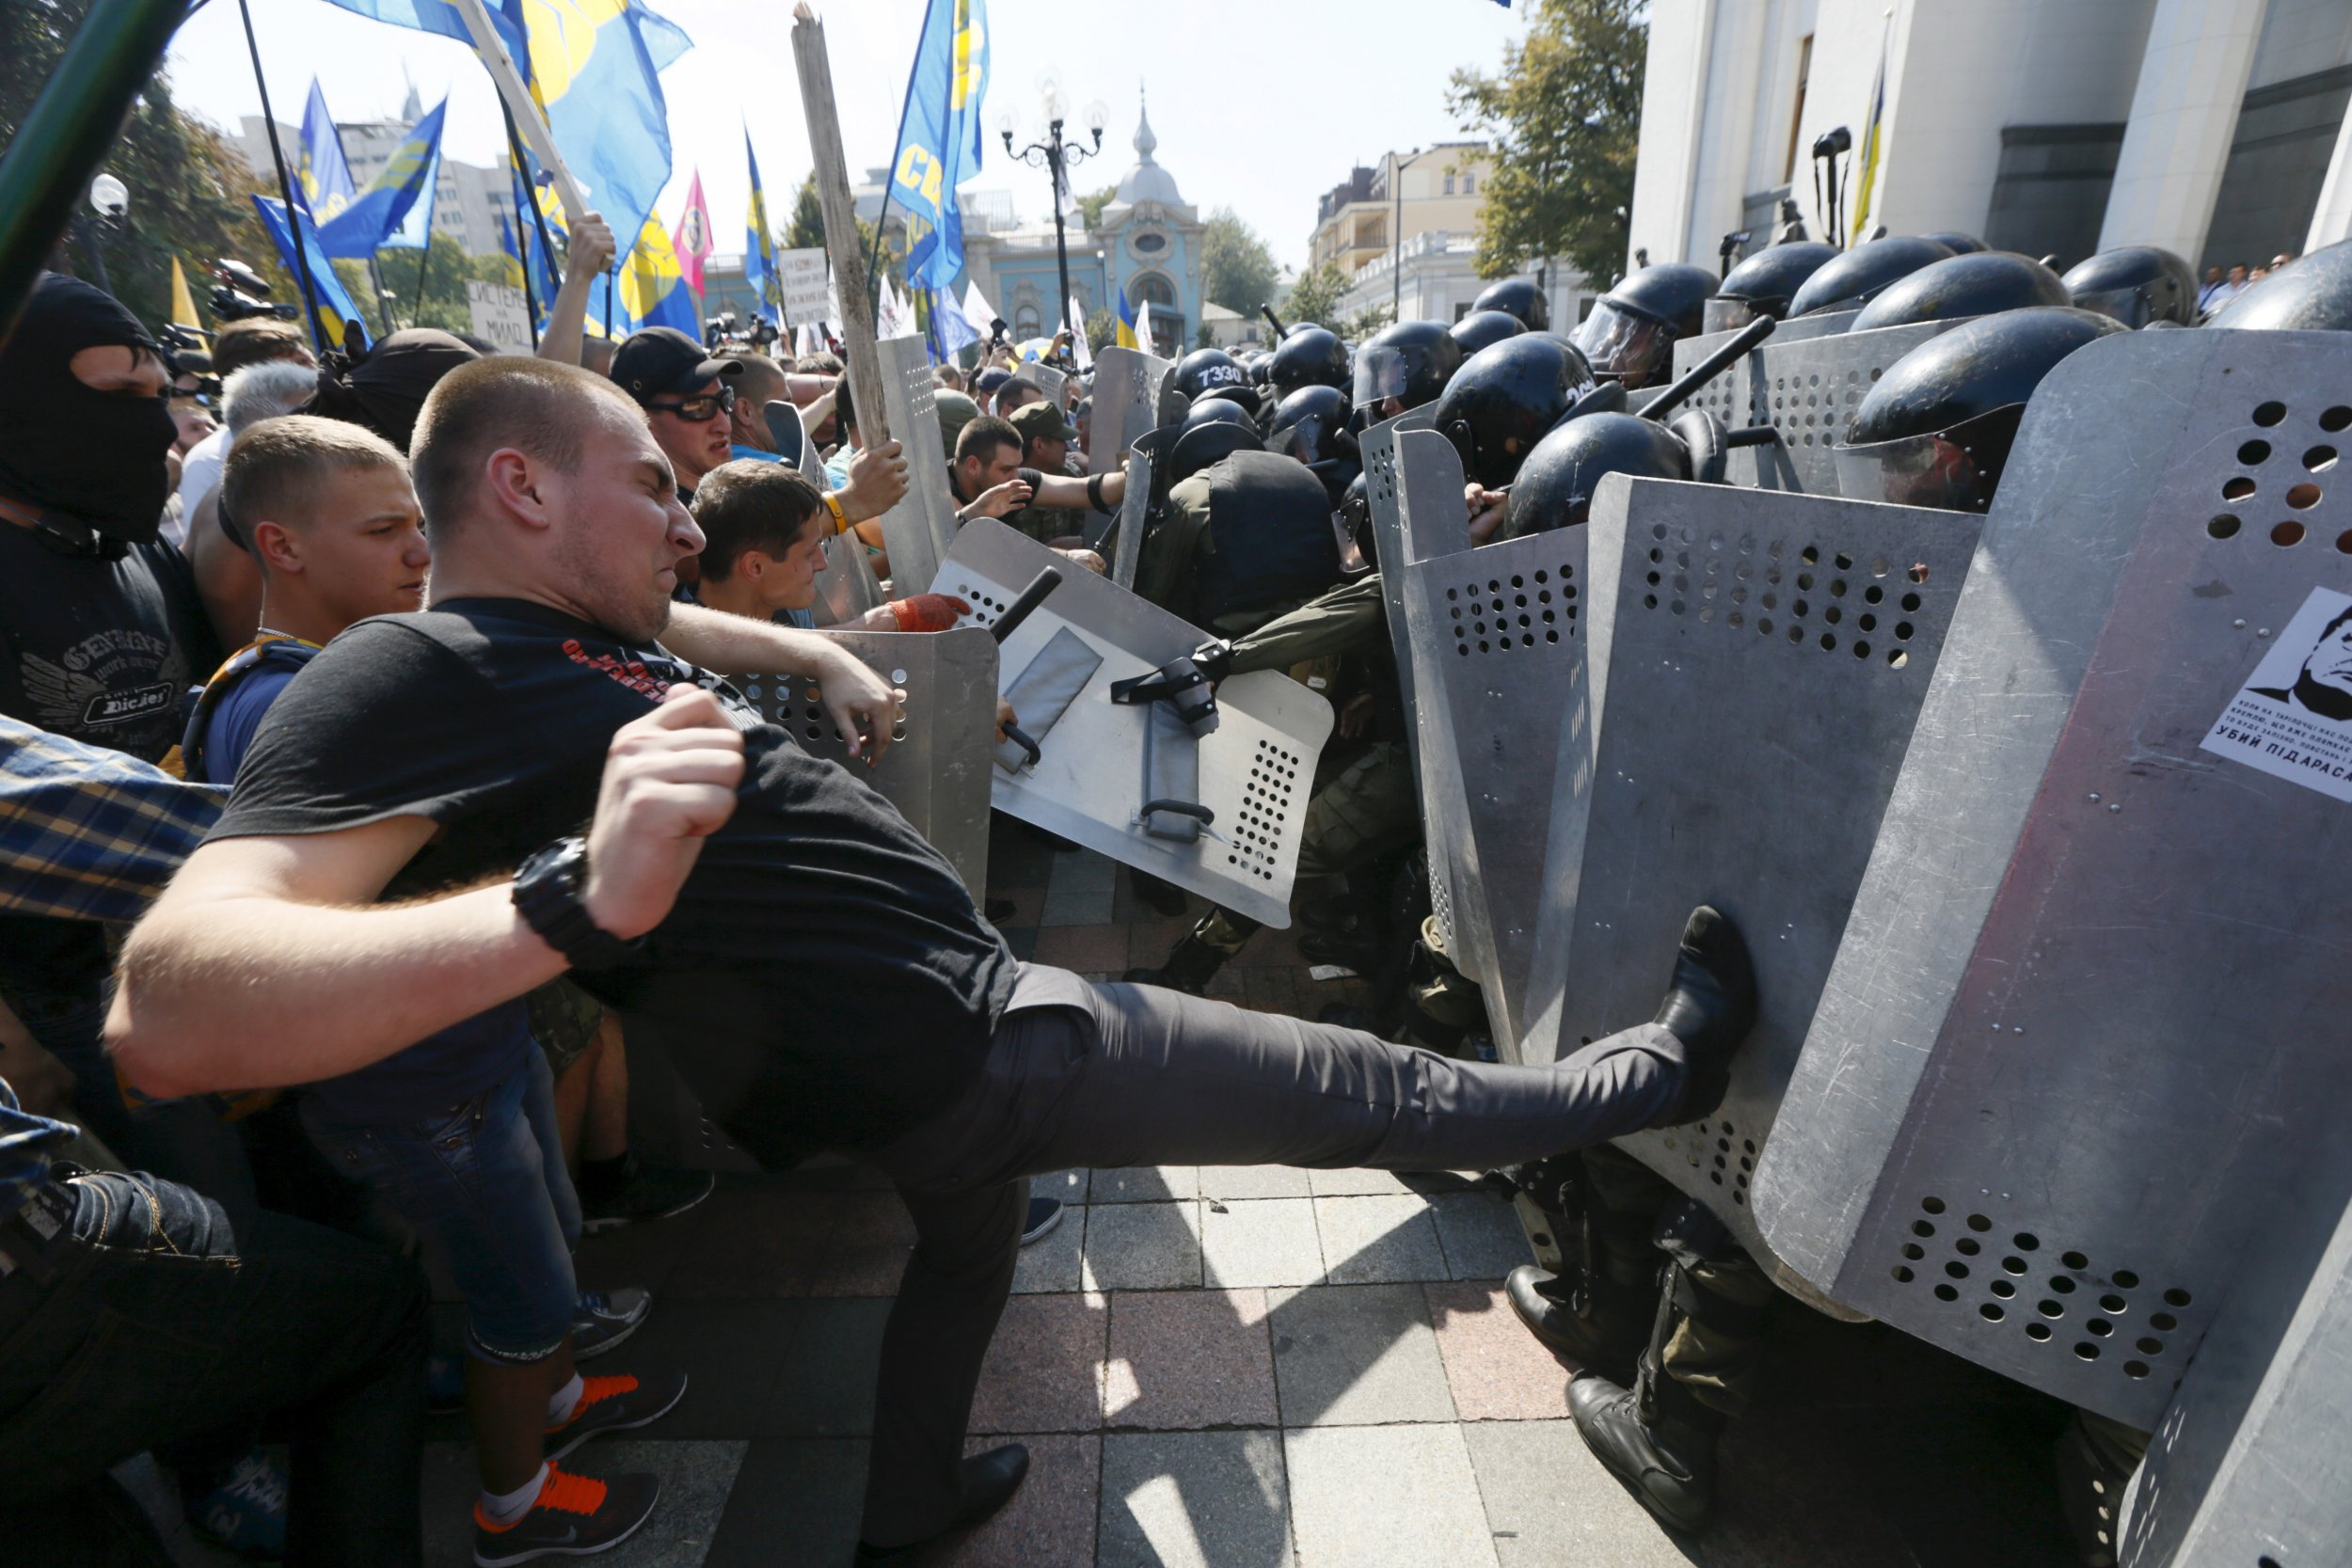 putin u2019s war  kiev protests reflect frustration with war strategy